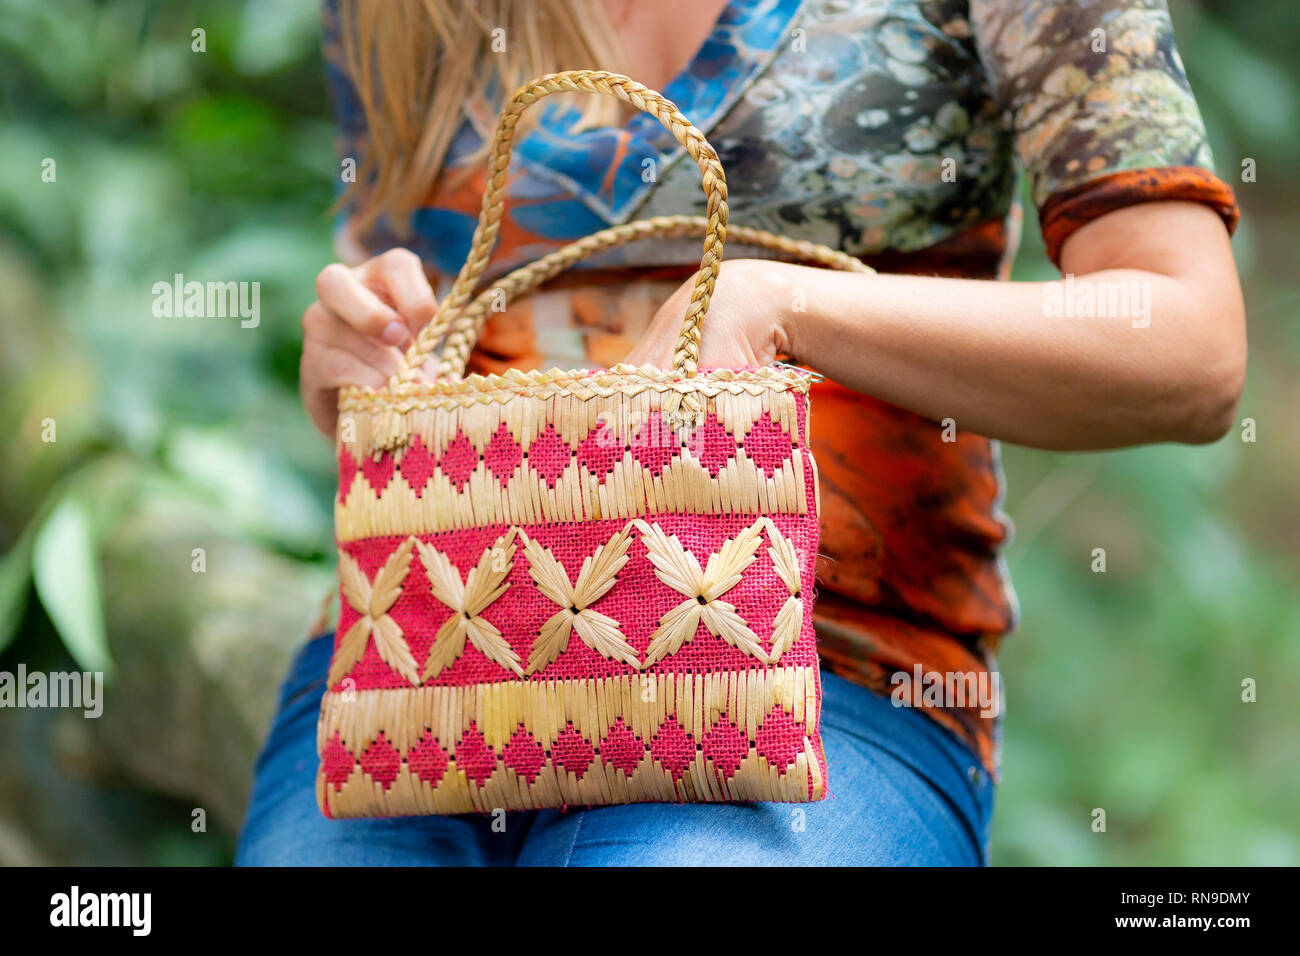 Closeup of the hands of a woman in jeans and colourful top reaching in her handbag that rests on her knees in a natural surrounding in the background Stock Photo